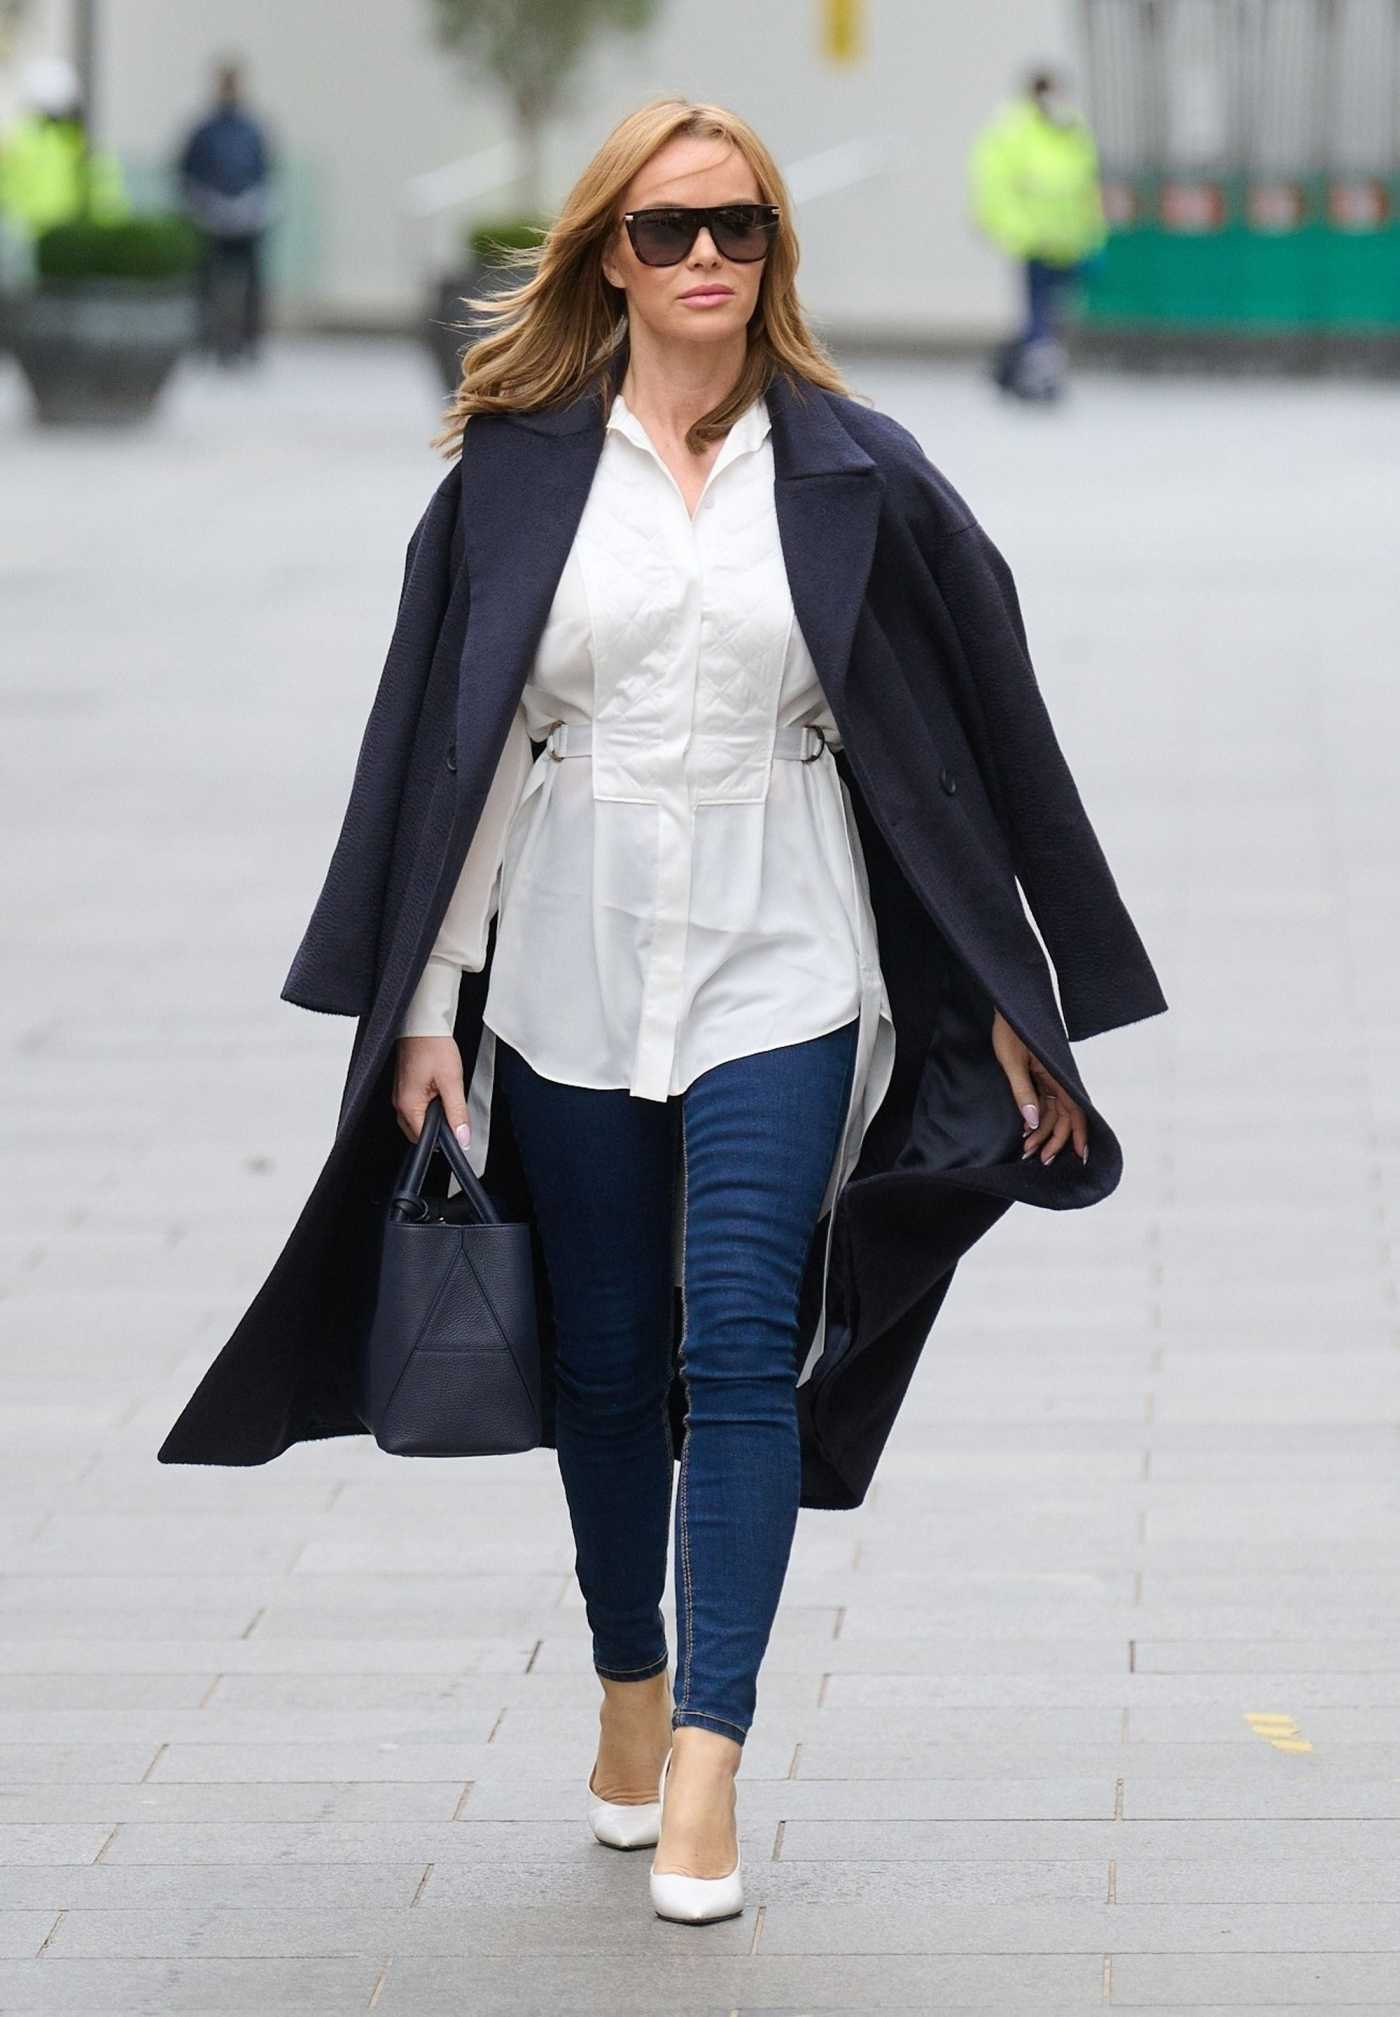 Amanda Holden in a White Blouse Leaves the Global Radio Studios in London 01/18/2021